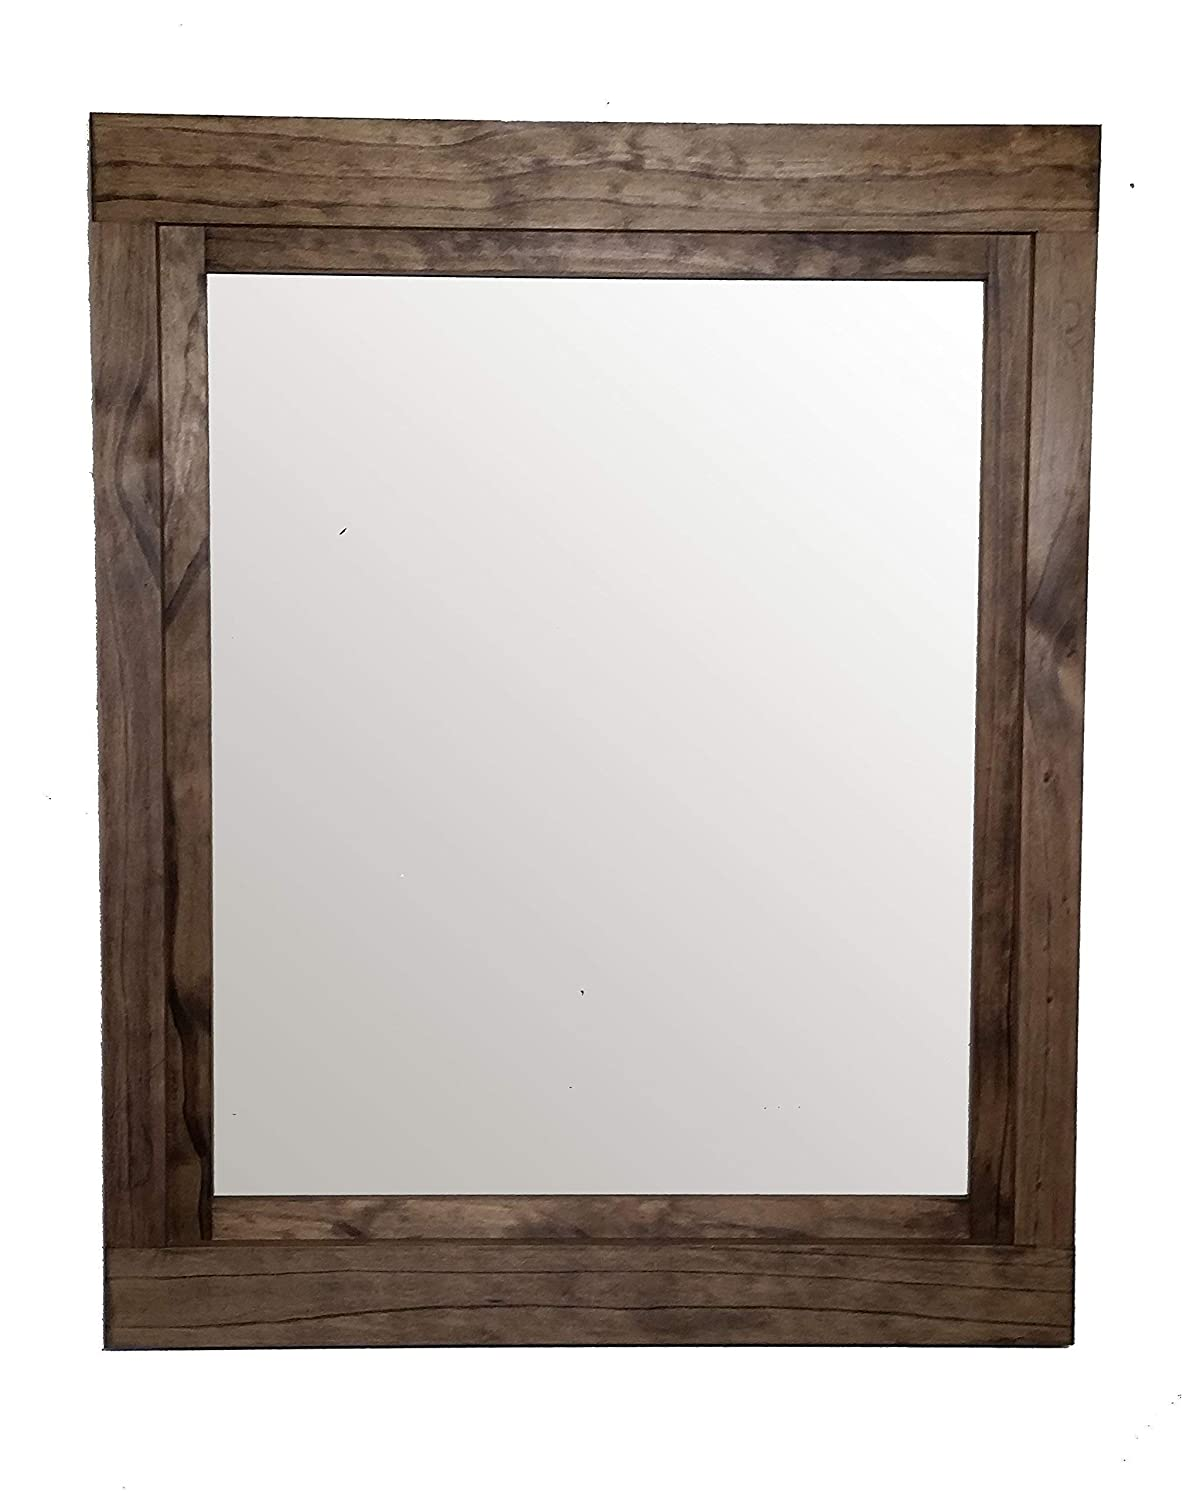 Farmhouse Large Framed Mirror Available in Four Sizes and 20 Stain Colors: Shown in Provincial - Large Wall Mirror – Rustic Bathroom Decor - Wall Mirror Decorative